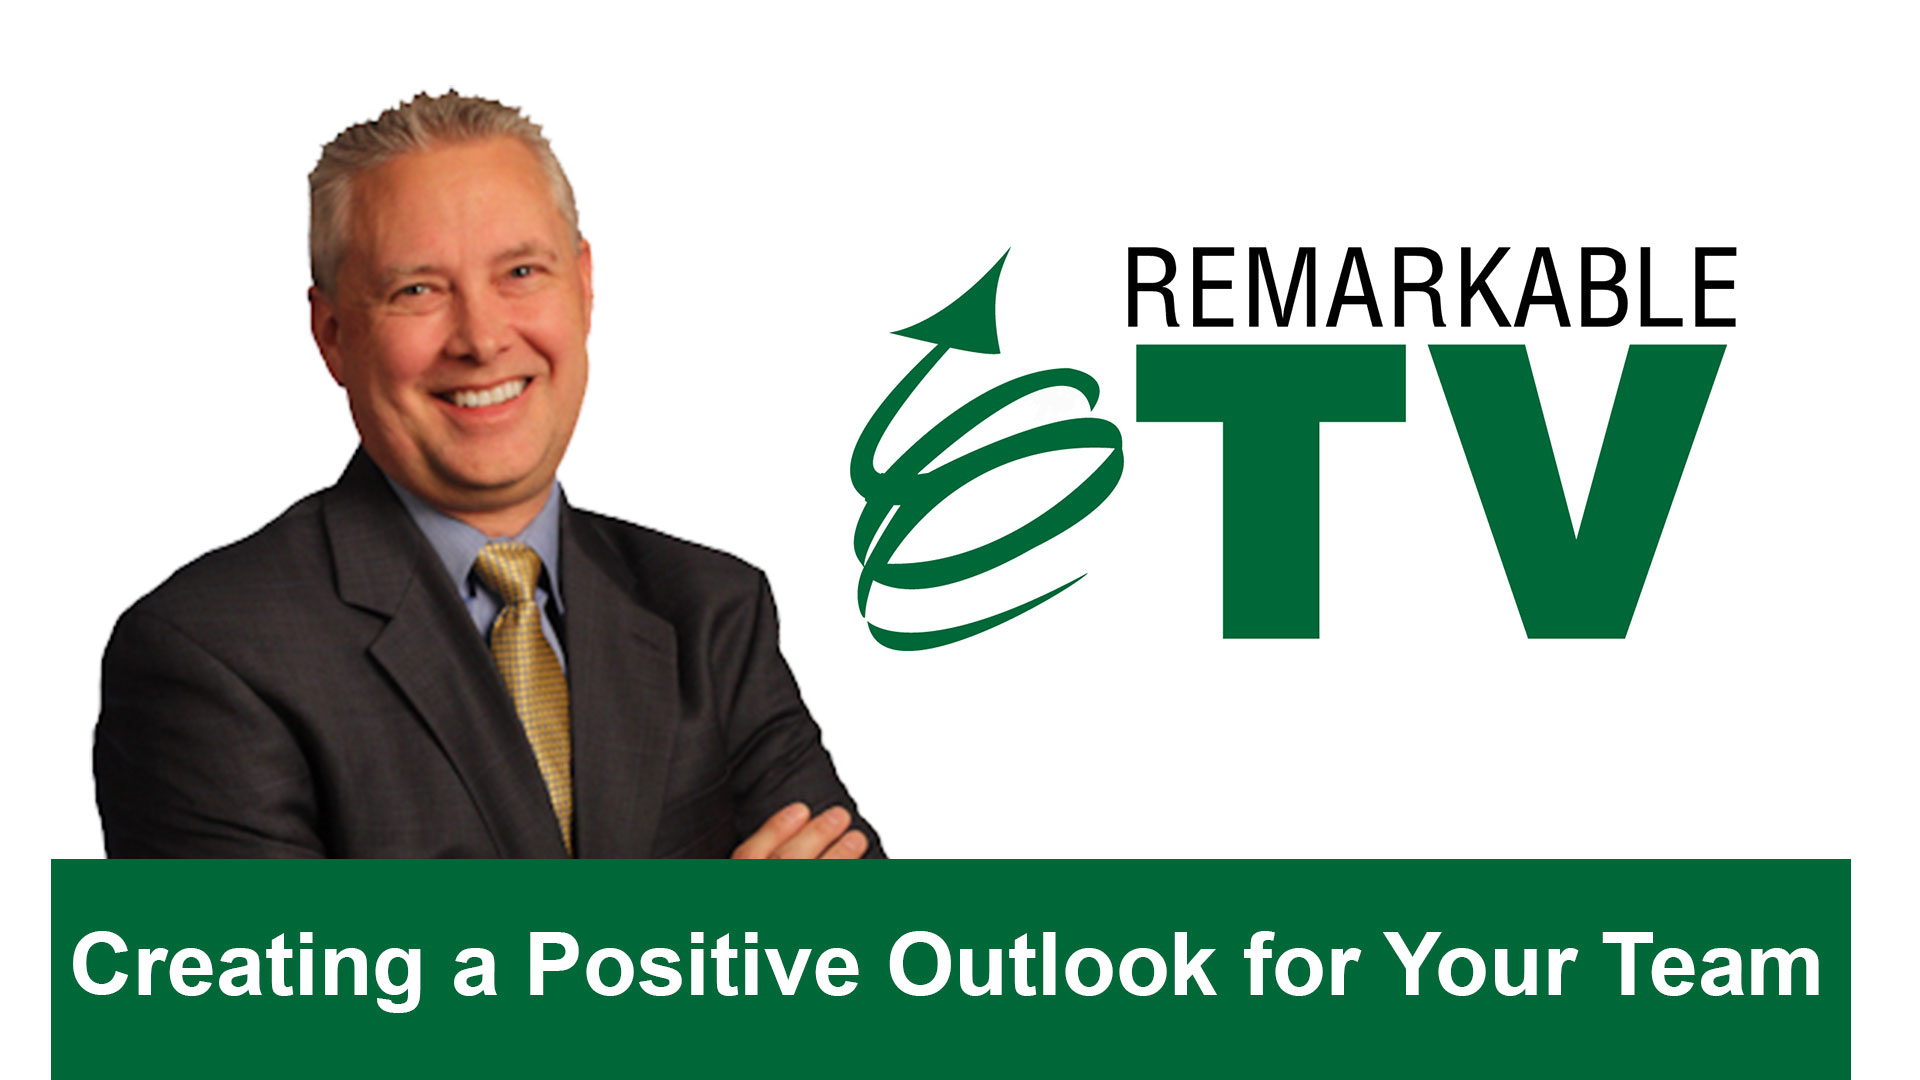 Remarkable TV: Creating a Positive Outlook for Your Team